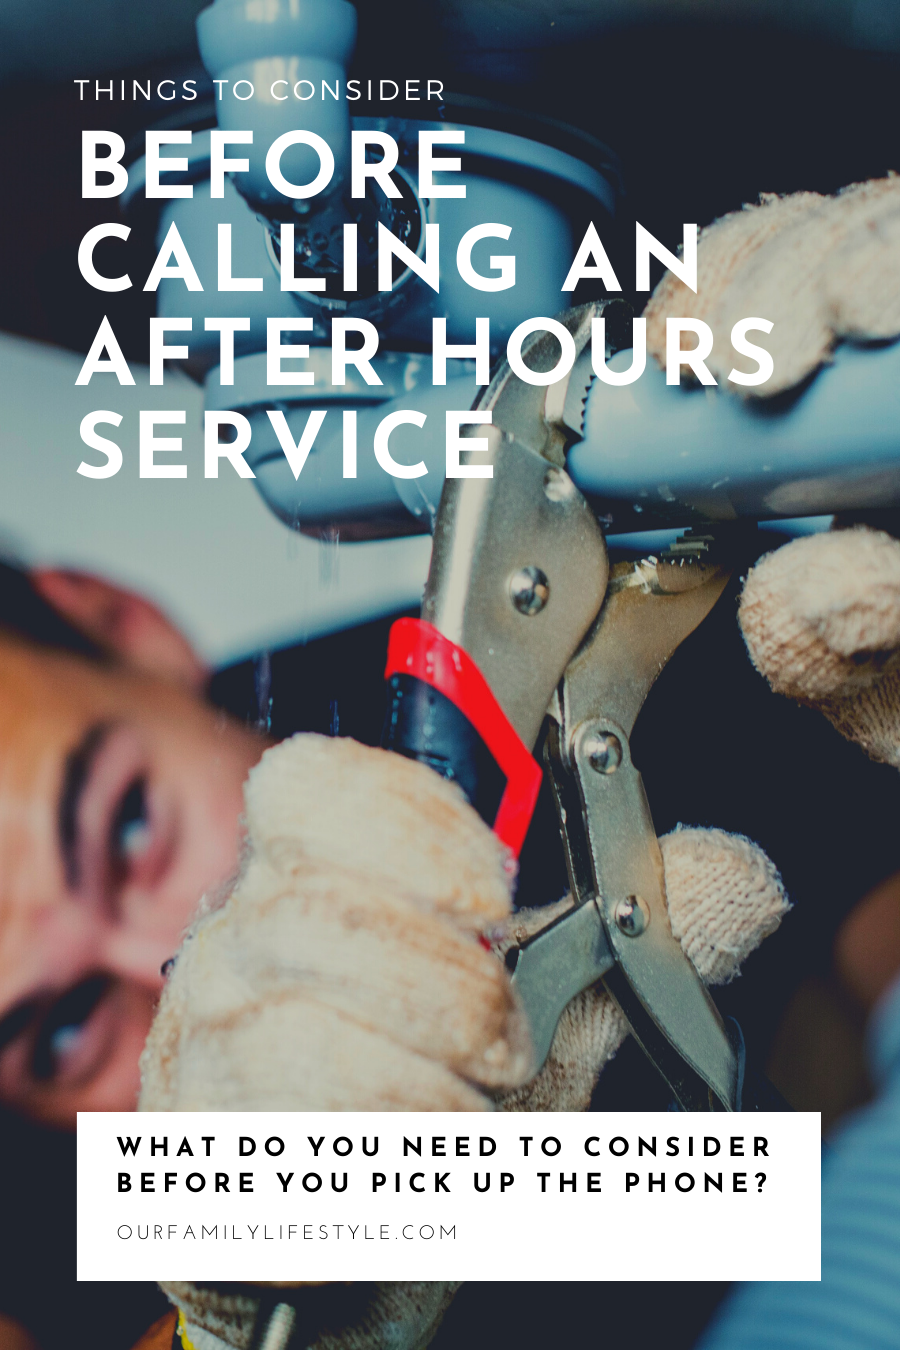 Things To Consider Before Calling an After Hours Service